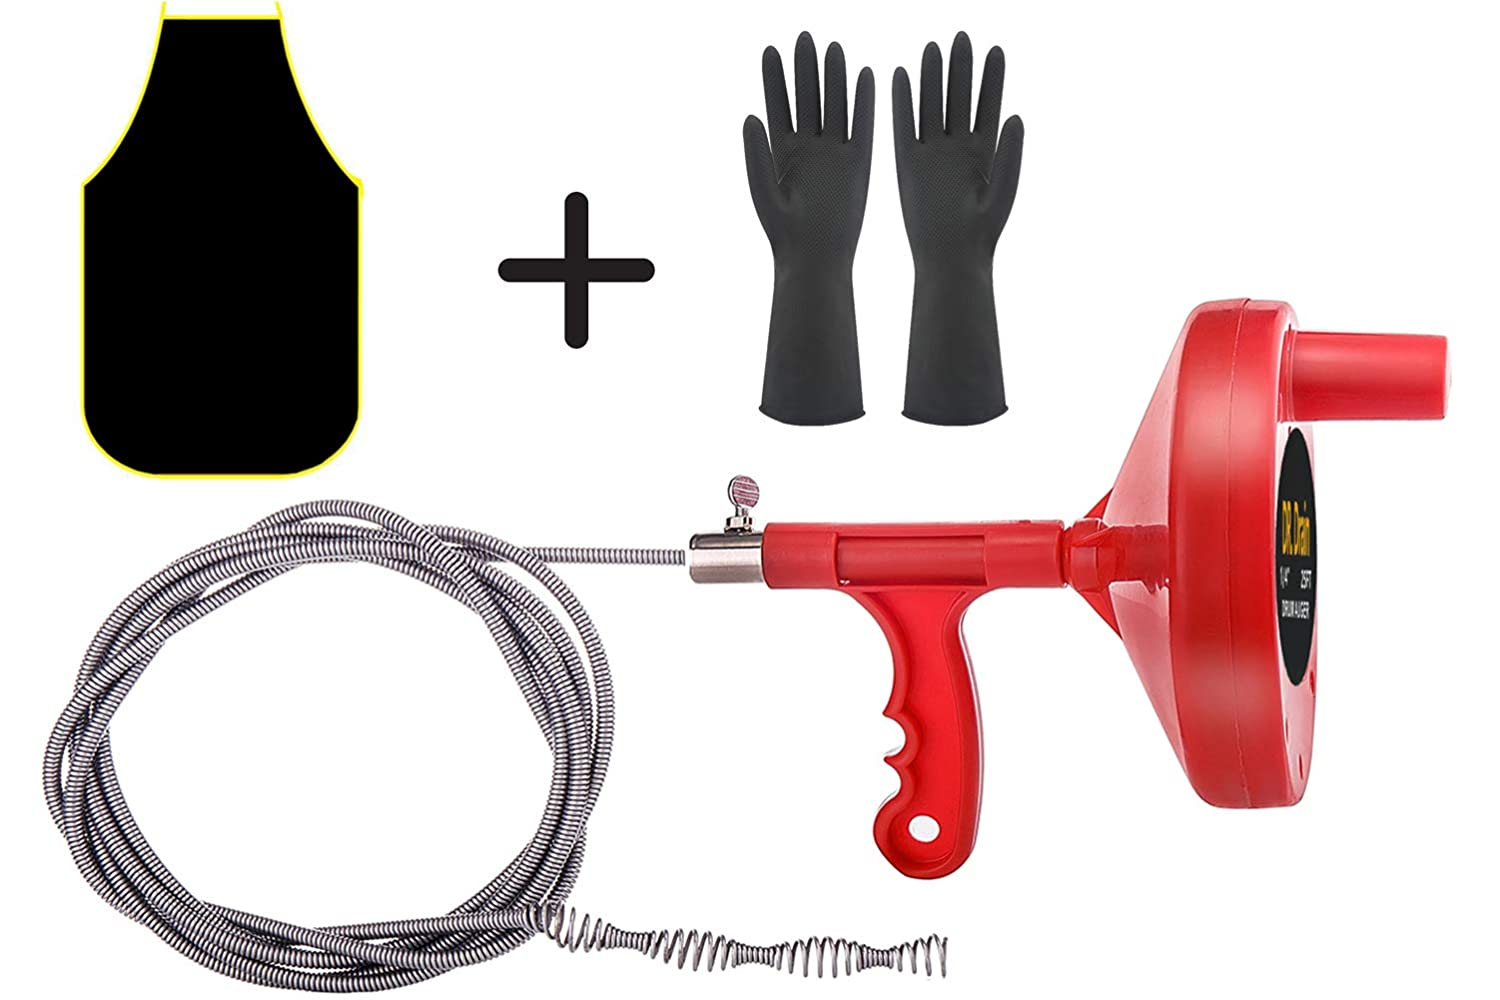 Plumbing Snake Drain Auger Clog-Remover - Hair Catcher Tool 25Ft Cable with Work Gloves and Apron (RED) Dr.Drain